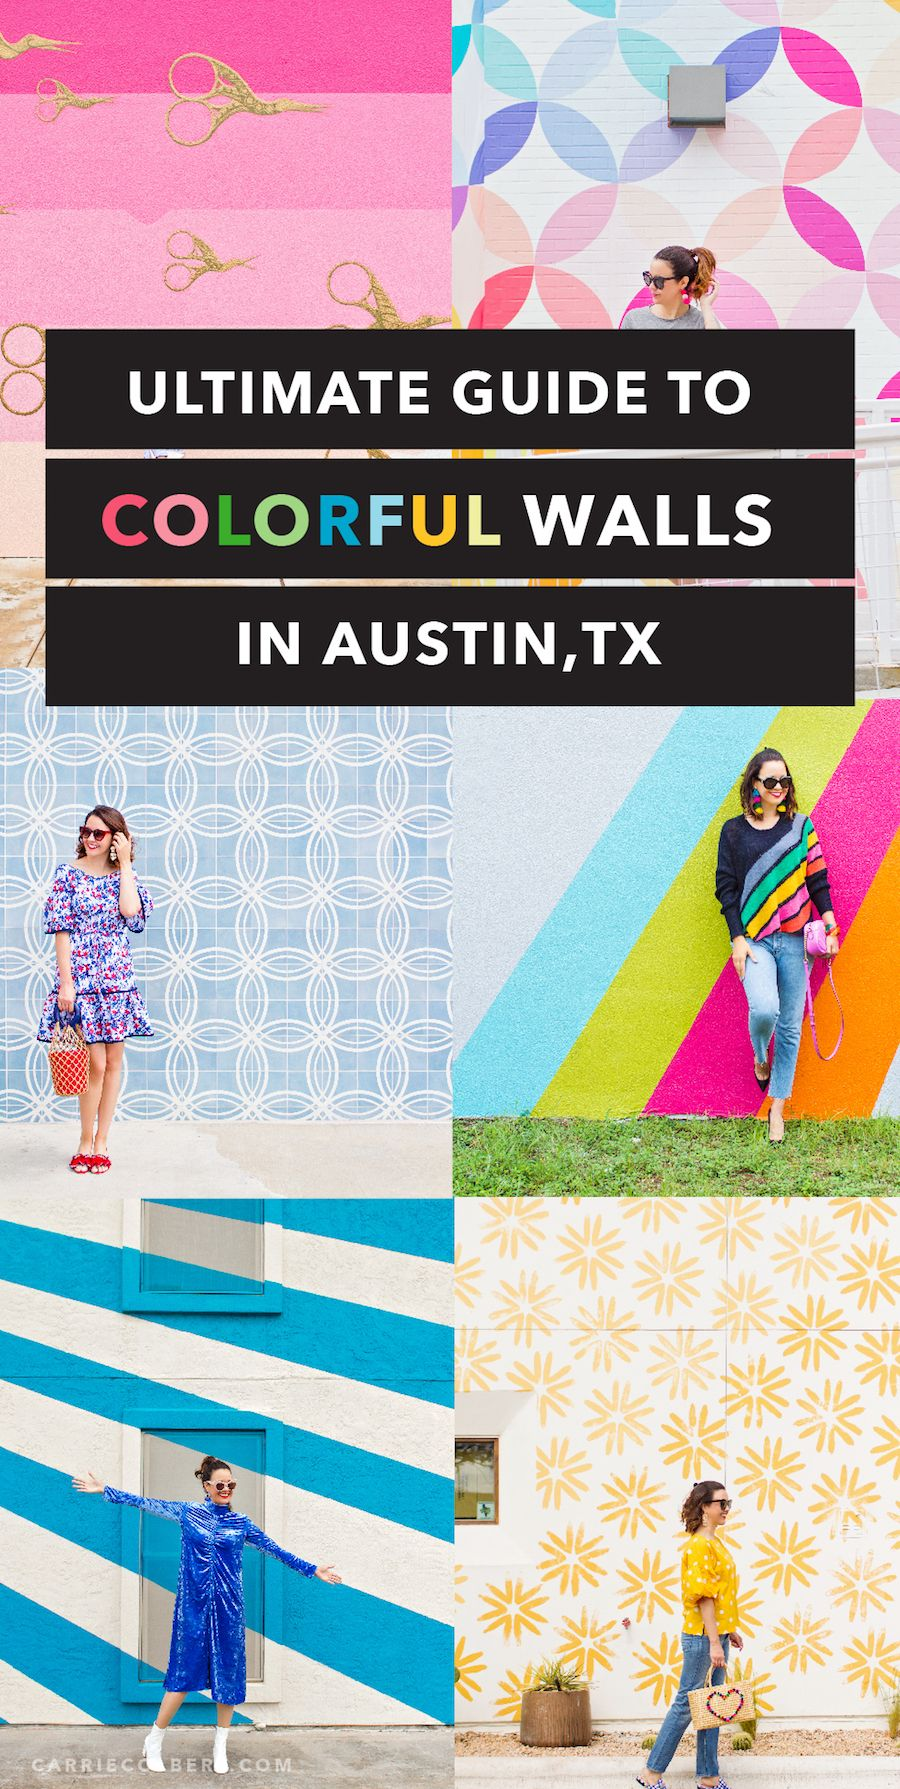 Austin Mural Guide Your Guide To Austin S Most Colorful Walls Carrie Colbert Austin Murals Austin Travel Austin Texas Travel